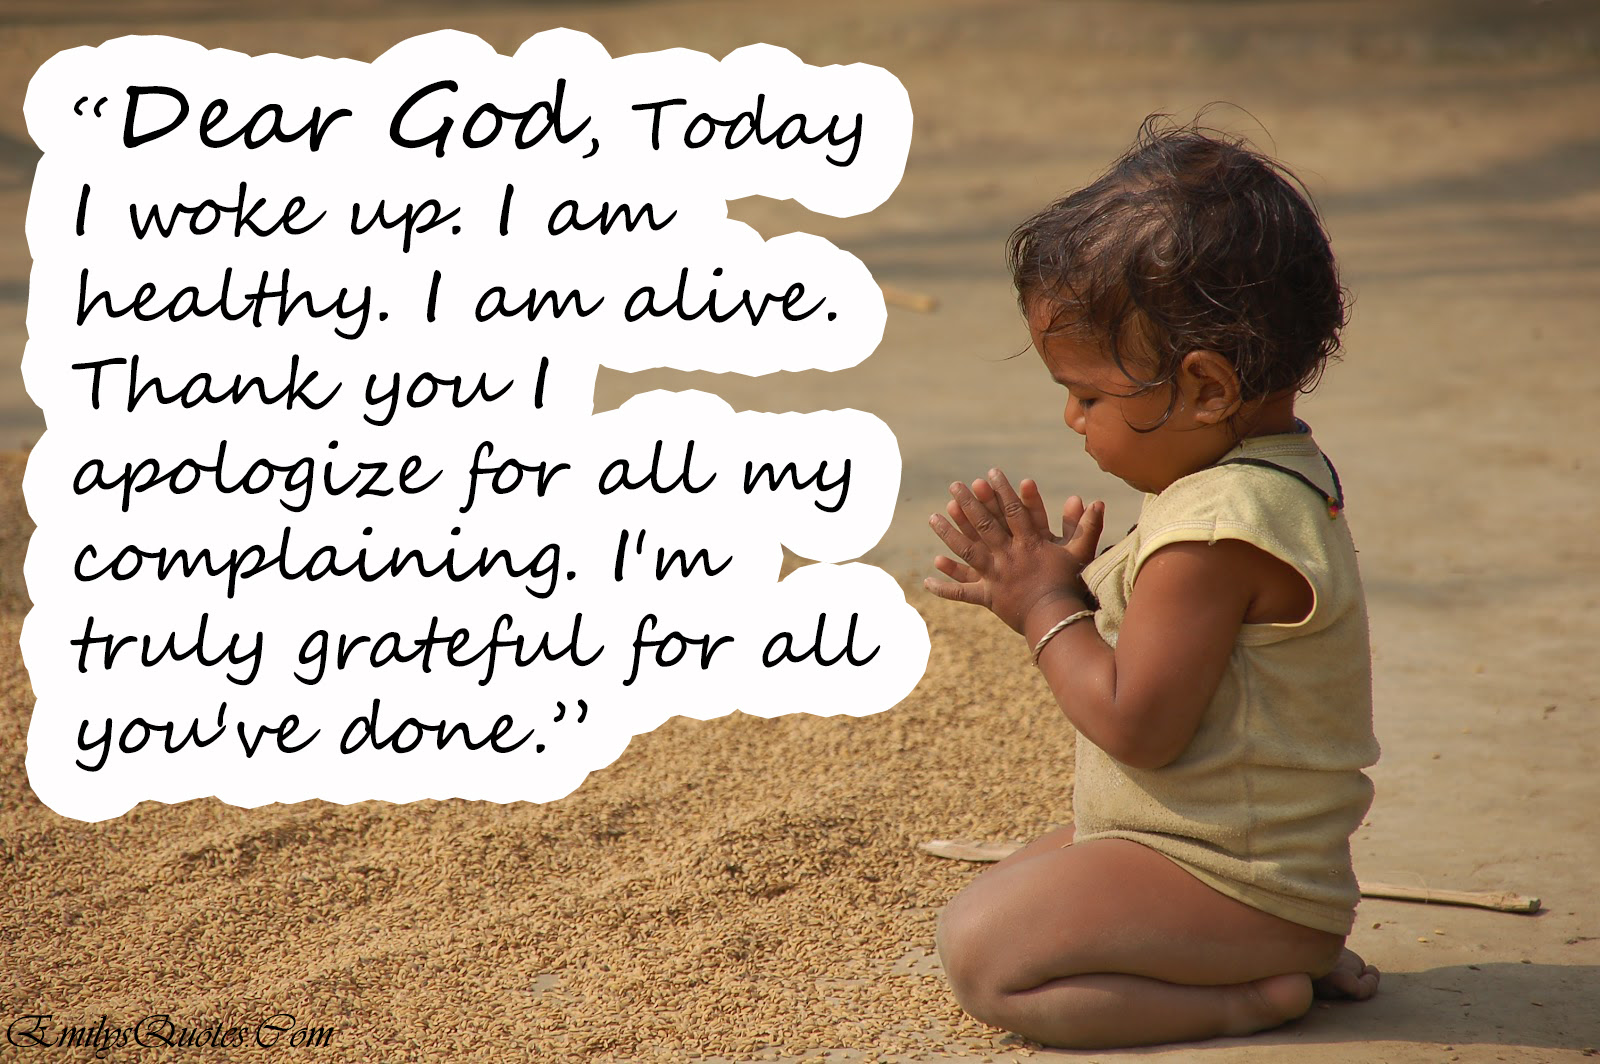 Dear God Im Truly Grateful For All Youve Done Small Acts Of